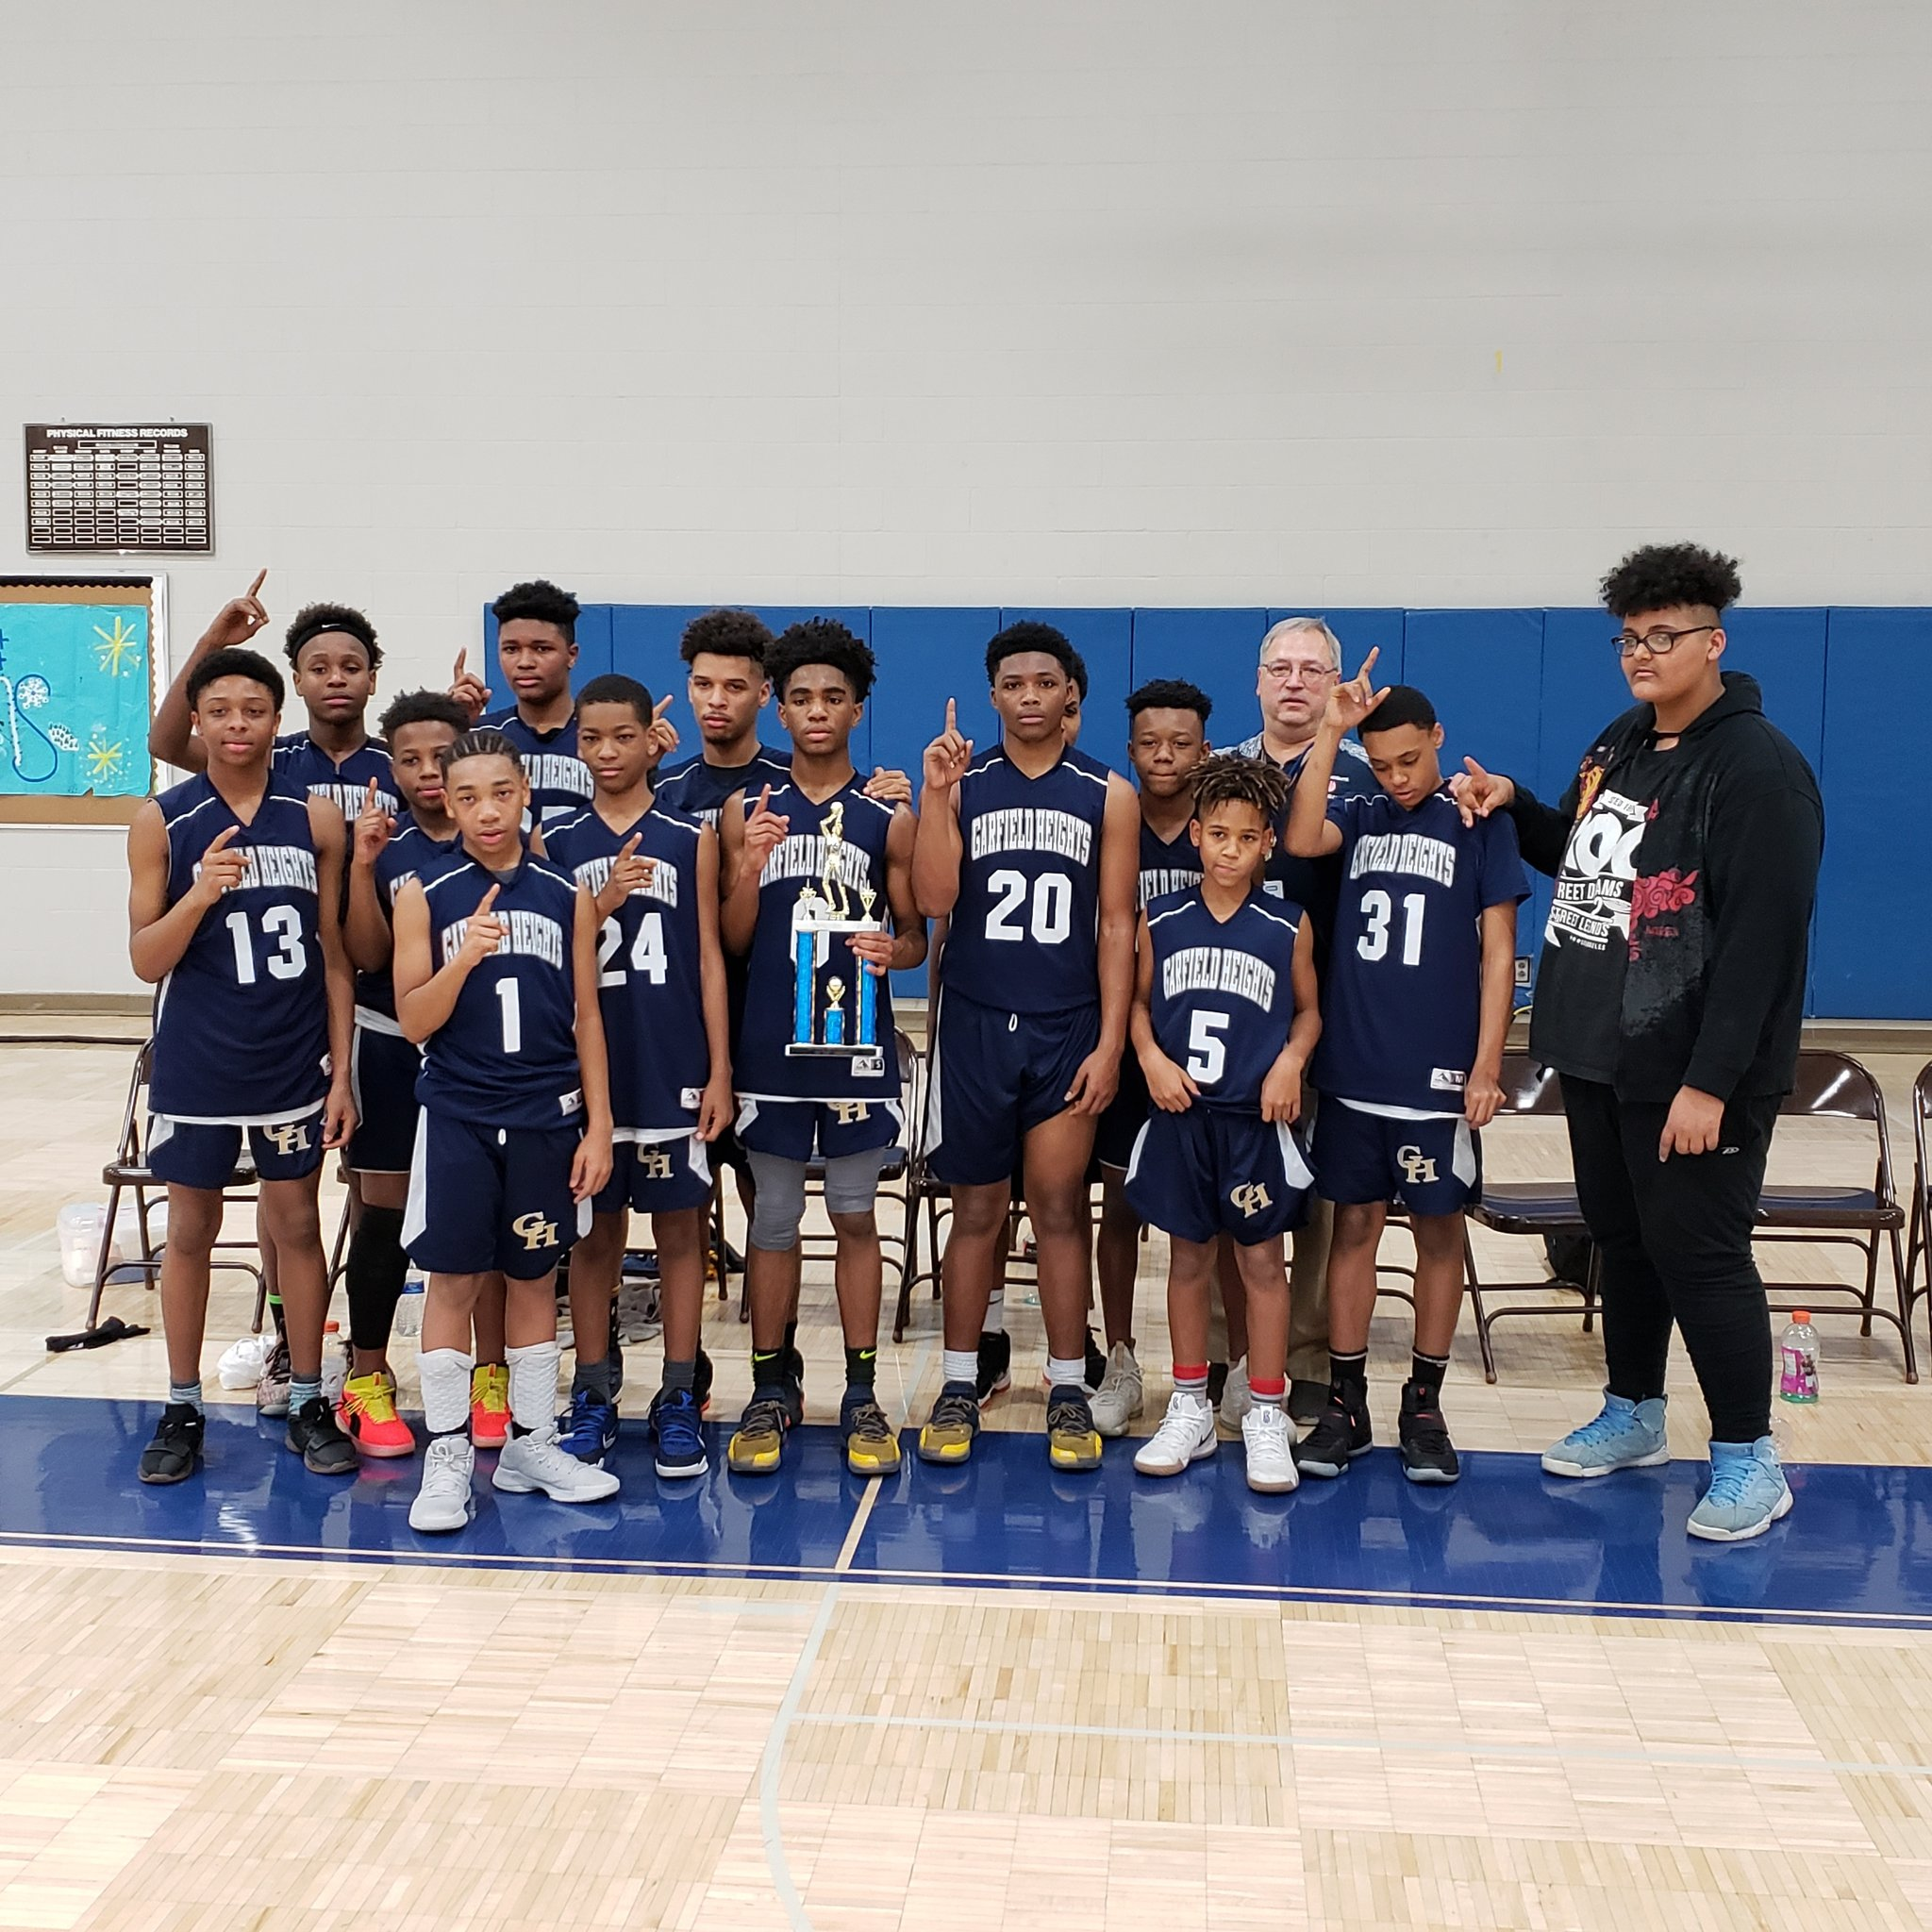 Garfield Heights Middle School On Twitter Gcc Champions The 8th Grade Boys Basketball Team Defeated The Undefeated Shaker Heights Team 48 To 47 In A Thrilling Game Mrglazer25 Ghbulldogsad Garfieldhts Sauerghms Athleticsghms